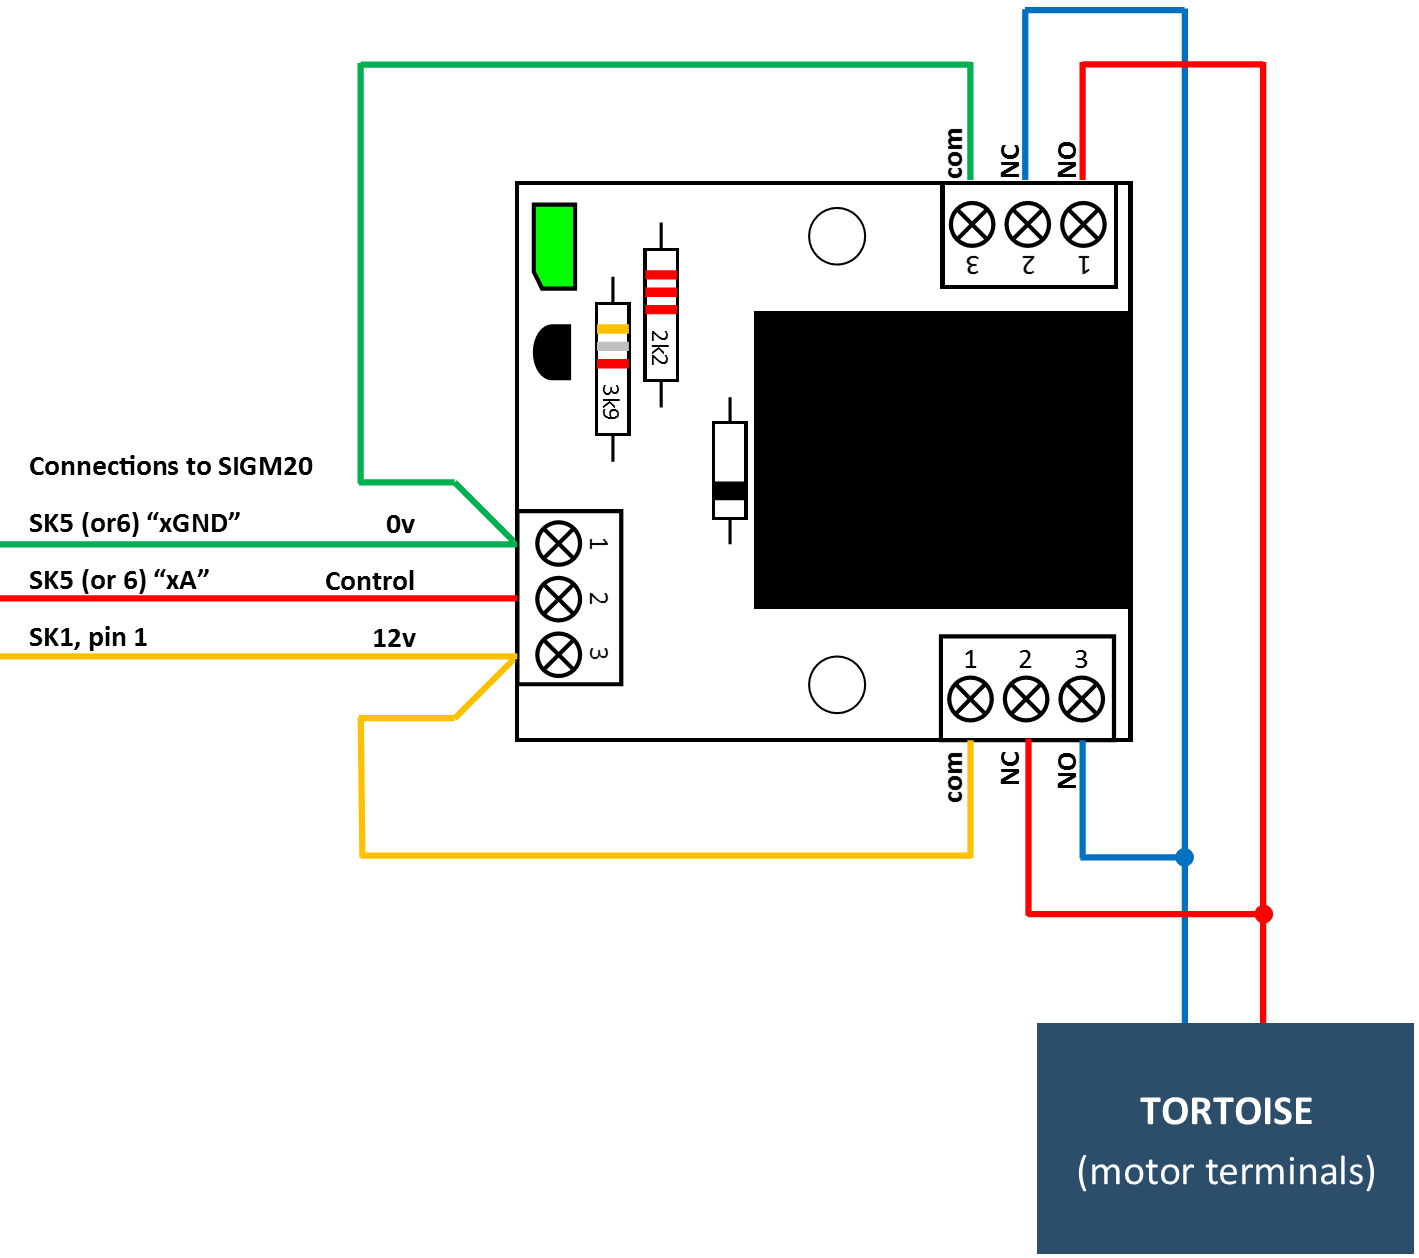 SIGM20 RLY2 Tortoise sigm20 controlling semaphore signals with tortoise motors (tn sk5 wiring diagram at gsmportal.co